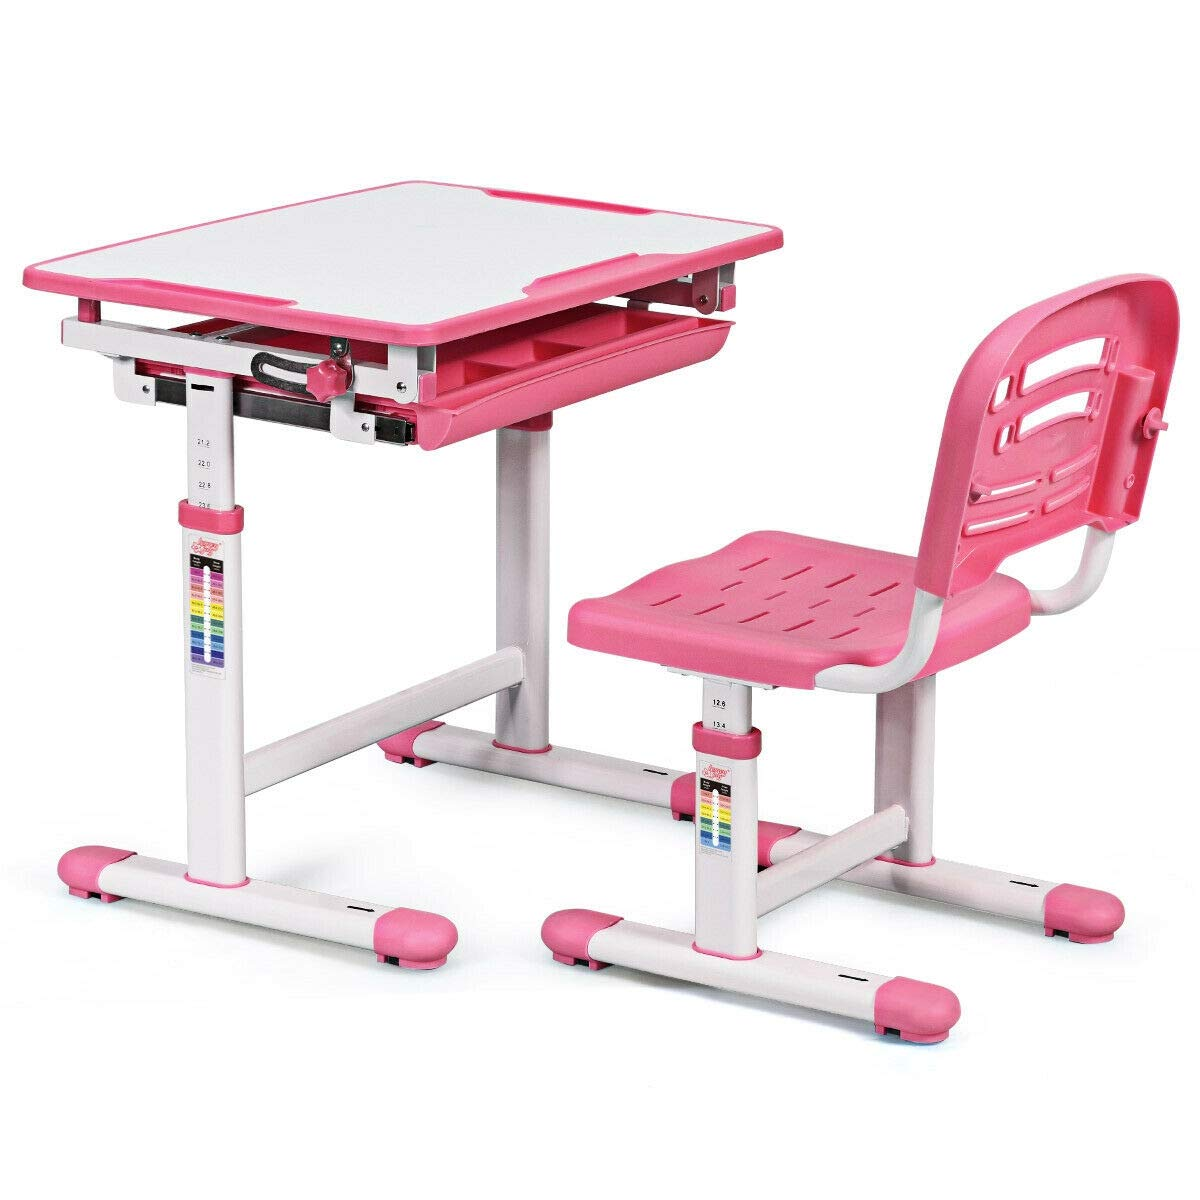 JF World Adjustable Children Multifunctional Study Drawing Desk Chair Set-Pink by JF World